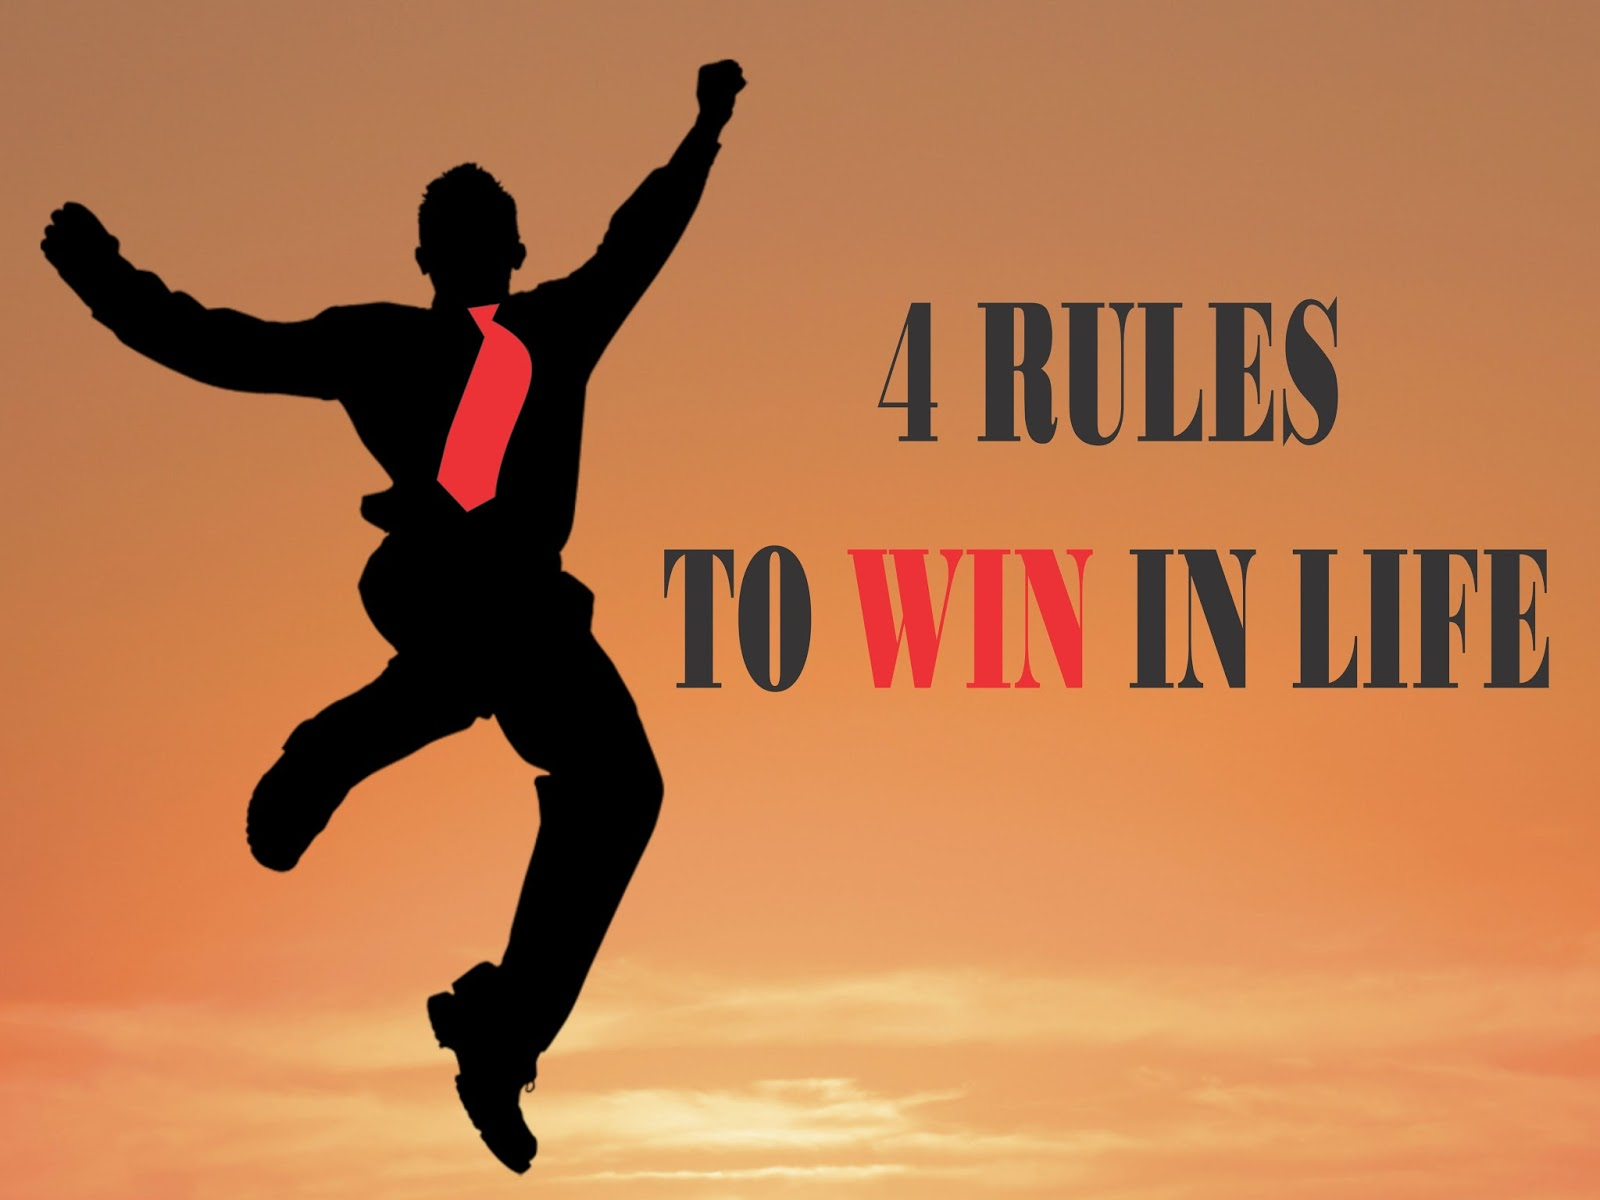 4 Rules To Win In Life